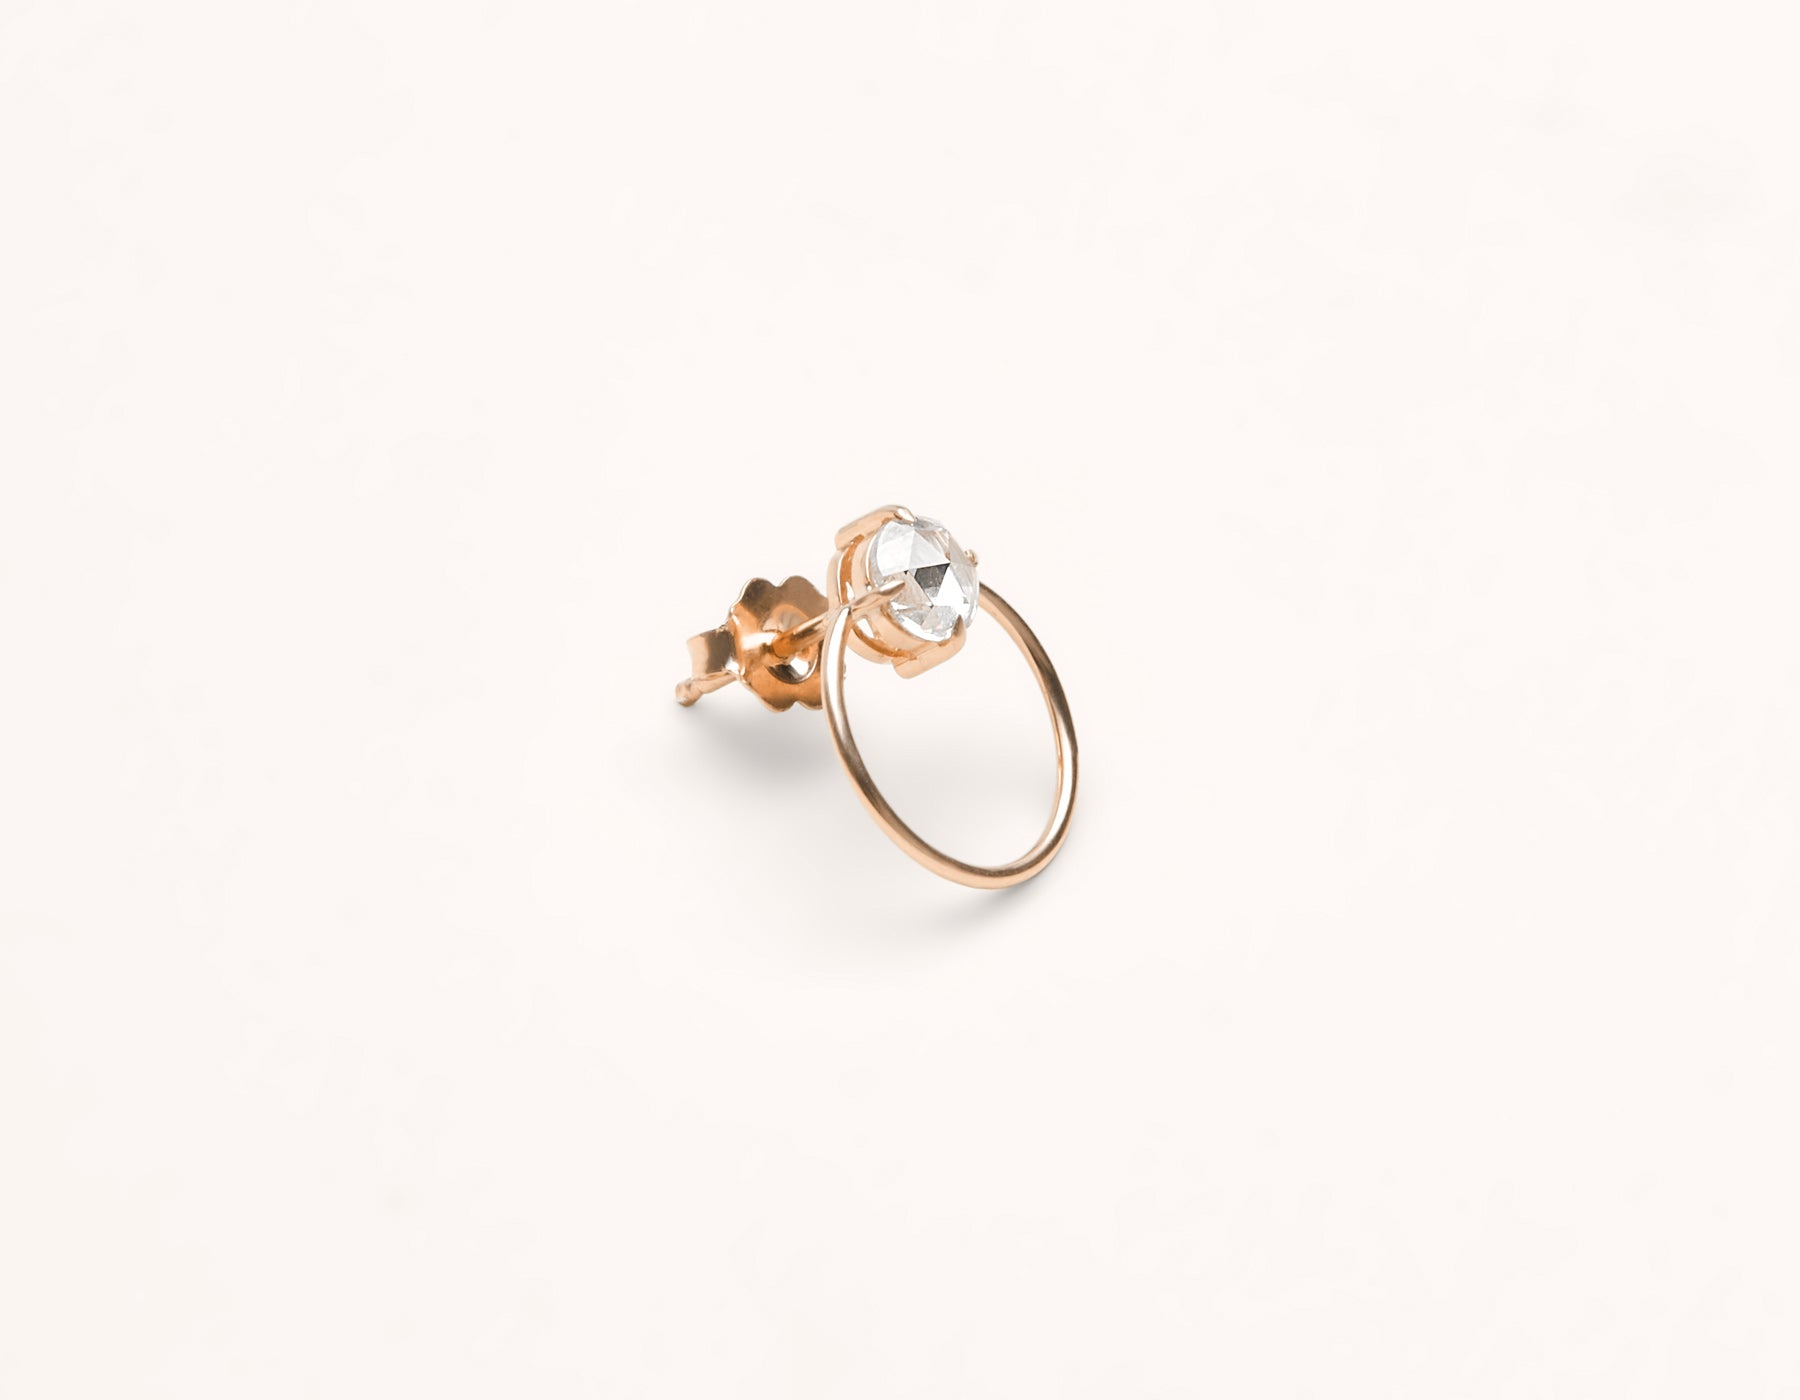 Unique minimalist 18k solid gold small Diamond Door Knocker studs hoop earring by Vrai & Oro black label sustainable jewelry, 18K Rose Gold